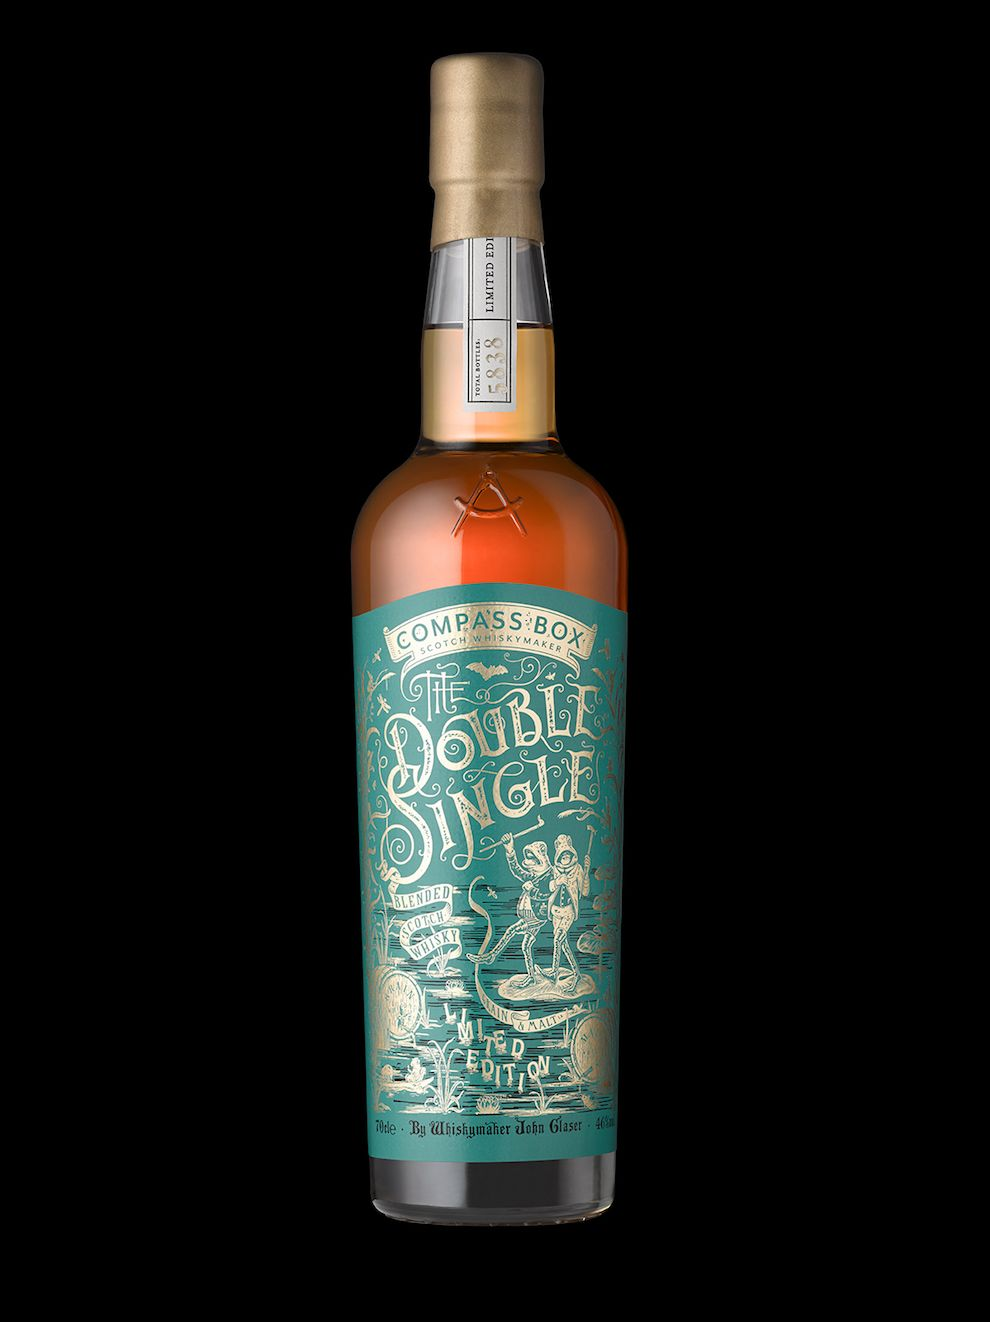 Compass Box -- The Double Single Package Design